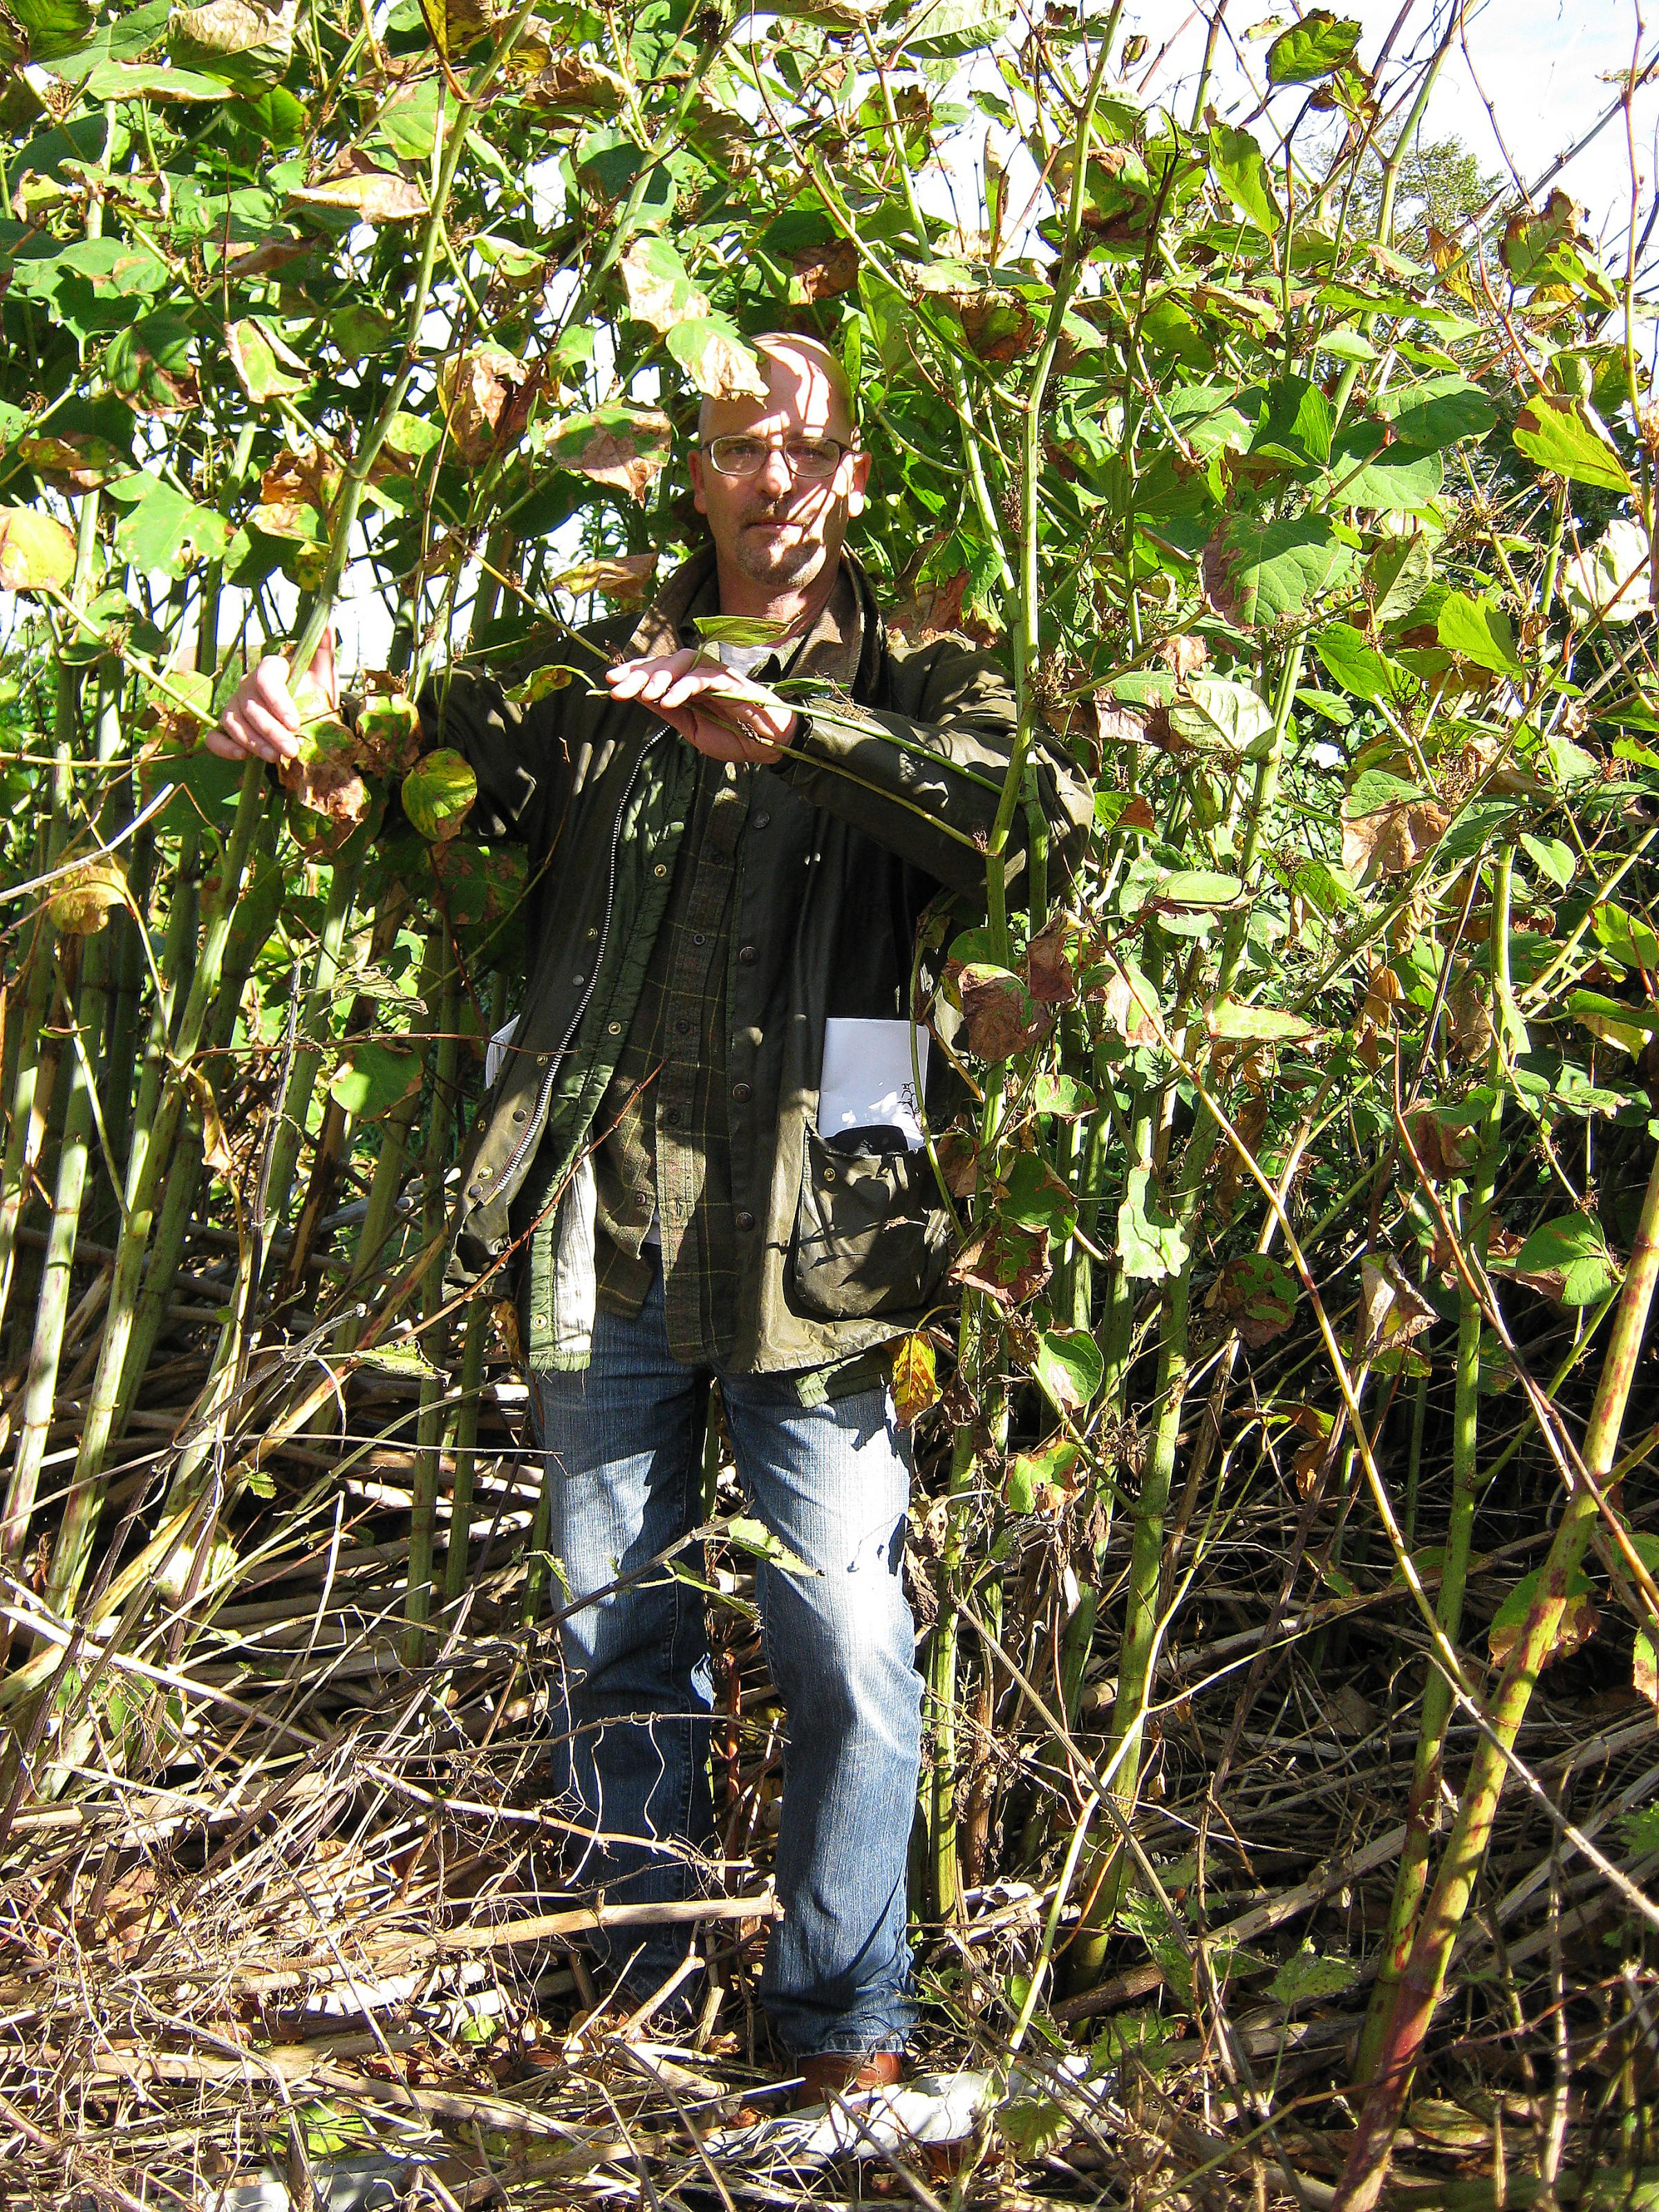 T&A reporter Chris Tate demonstrates the scale of the invasive Knotweed problem